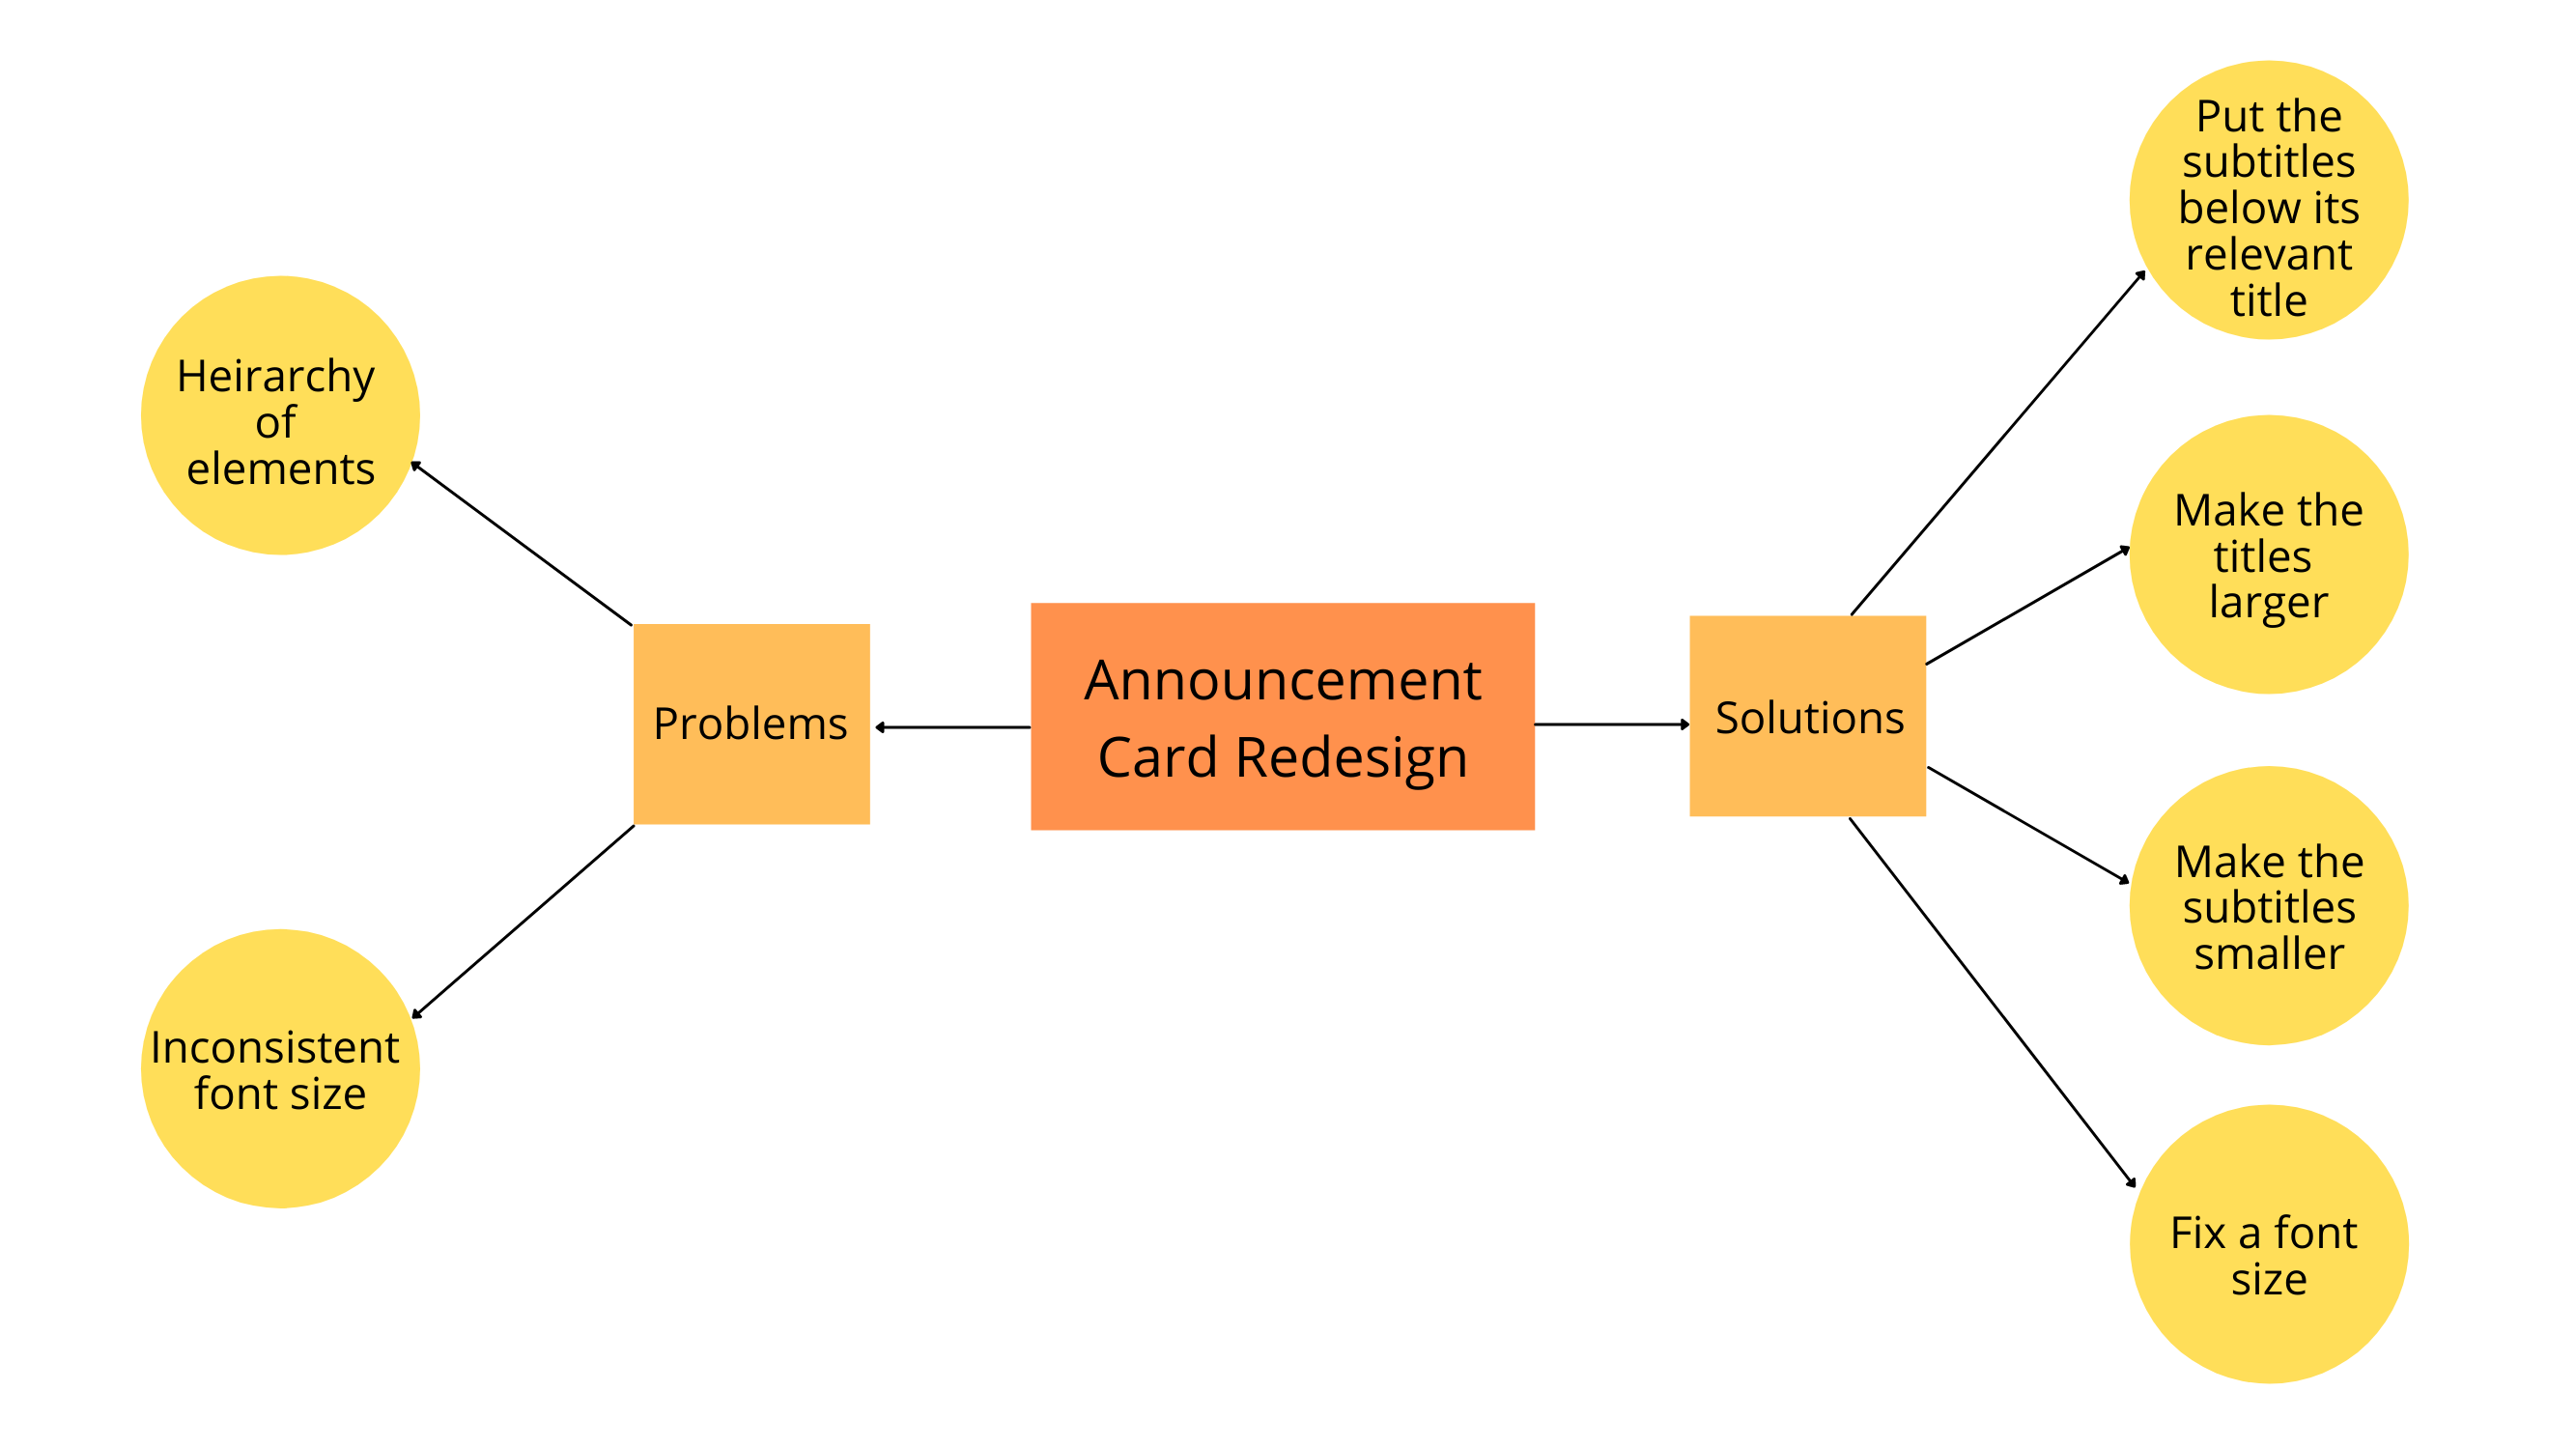 Mind Map for redesigning the Miss Universe 2015 Announcement Card